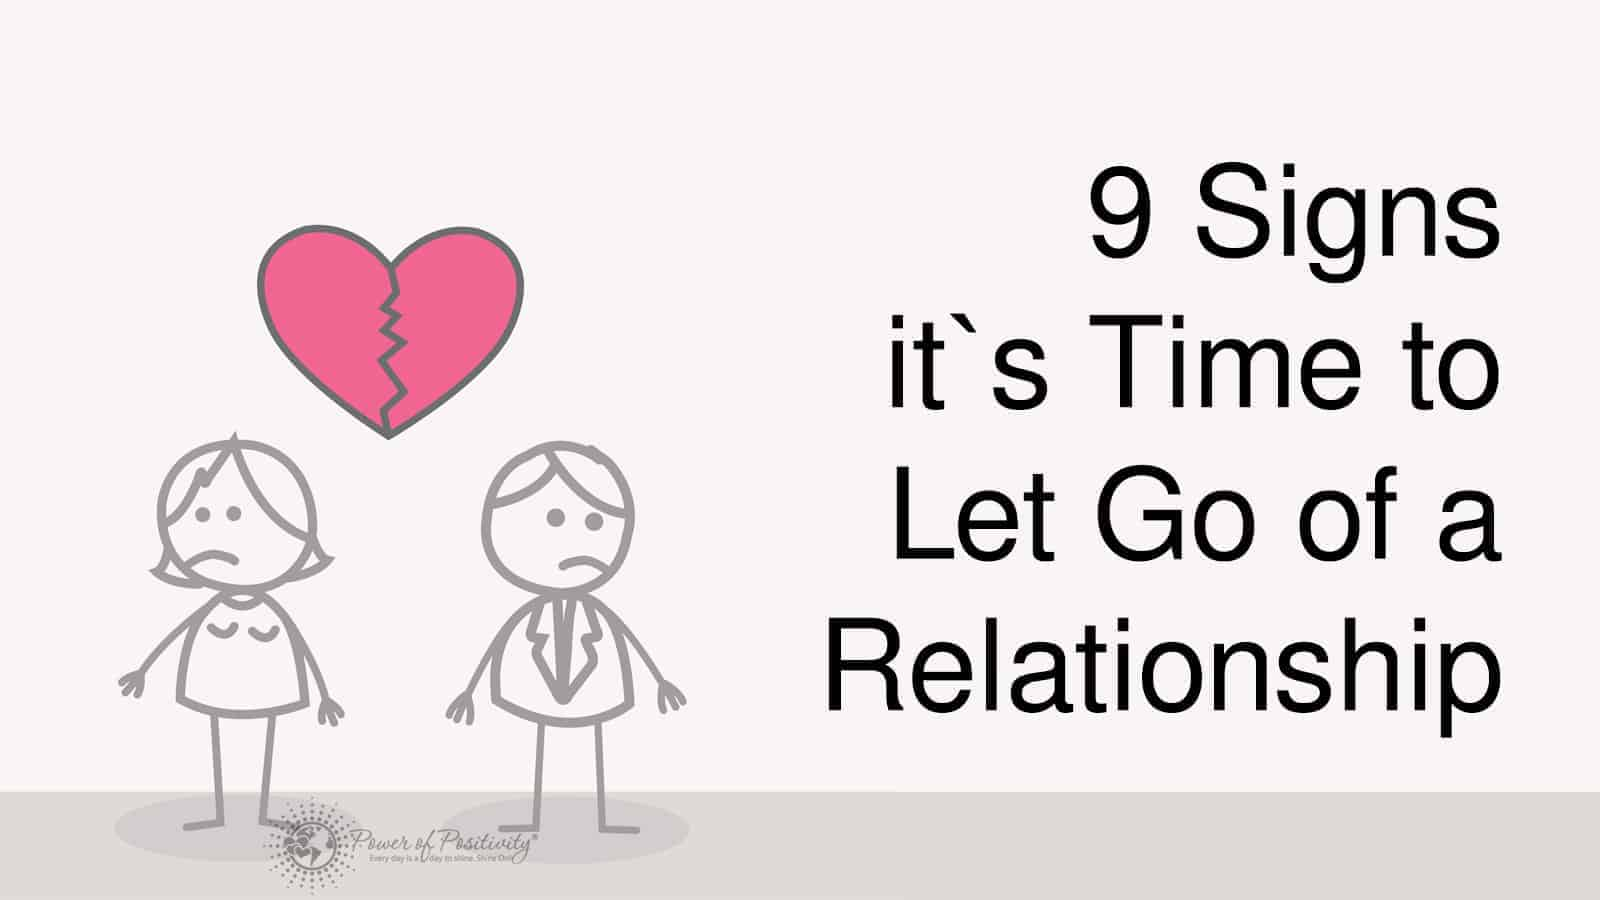 Quotes About Trust And Love In Relationships 9 Signs It's Time To End A Relationship And Let Go